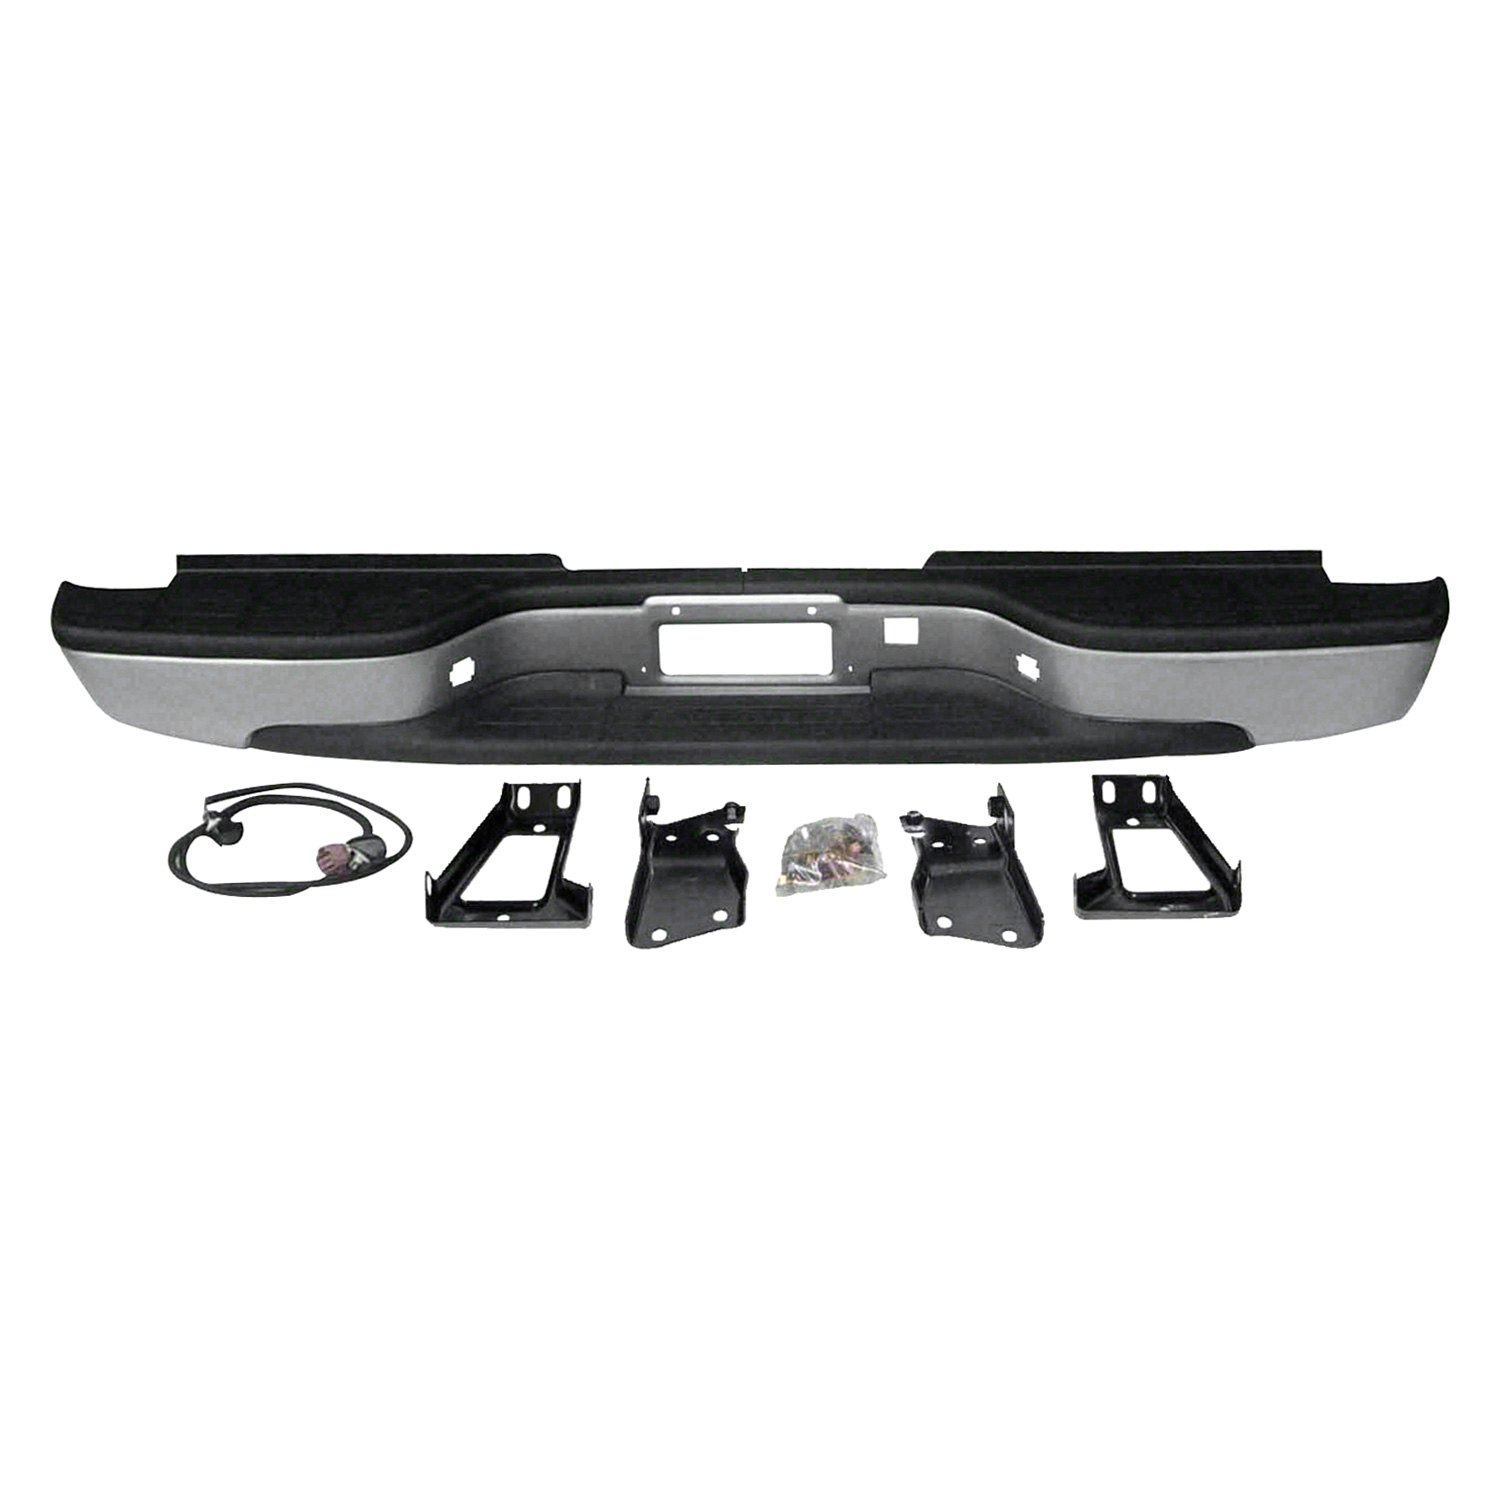 Rear Bumper Assy : Replace gm rear step bumper assembly